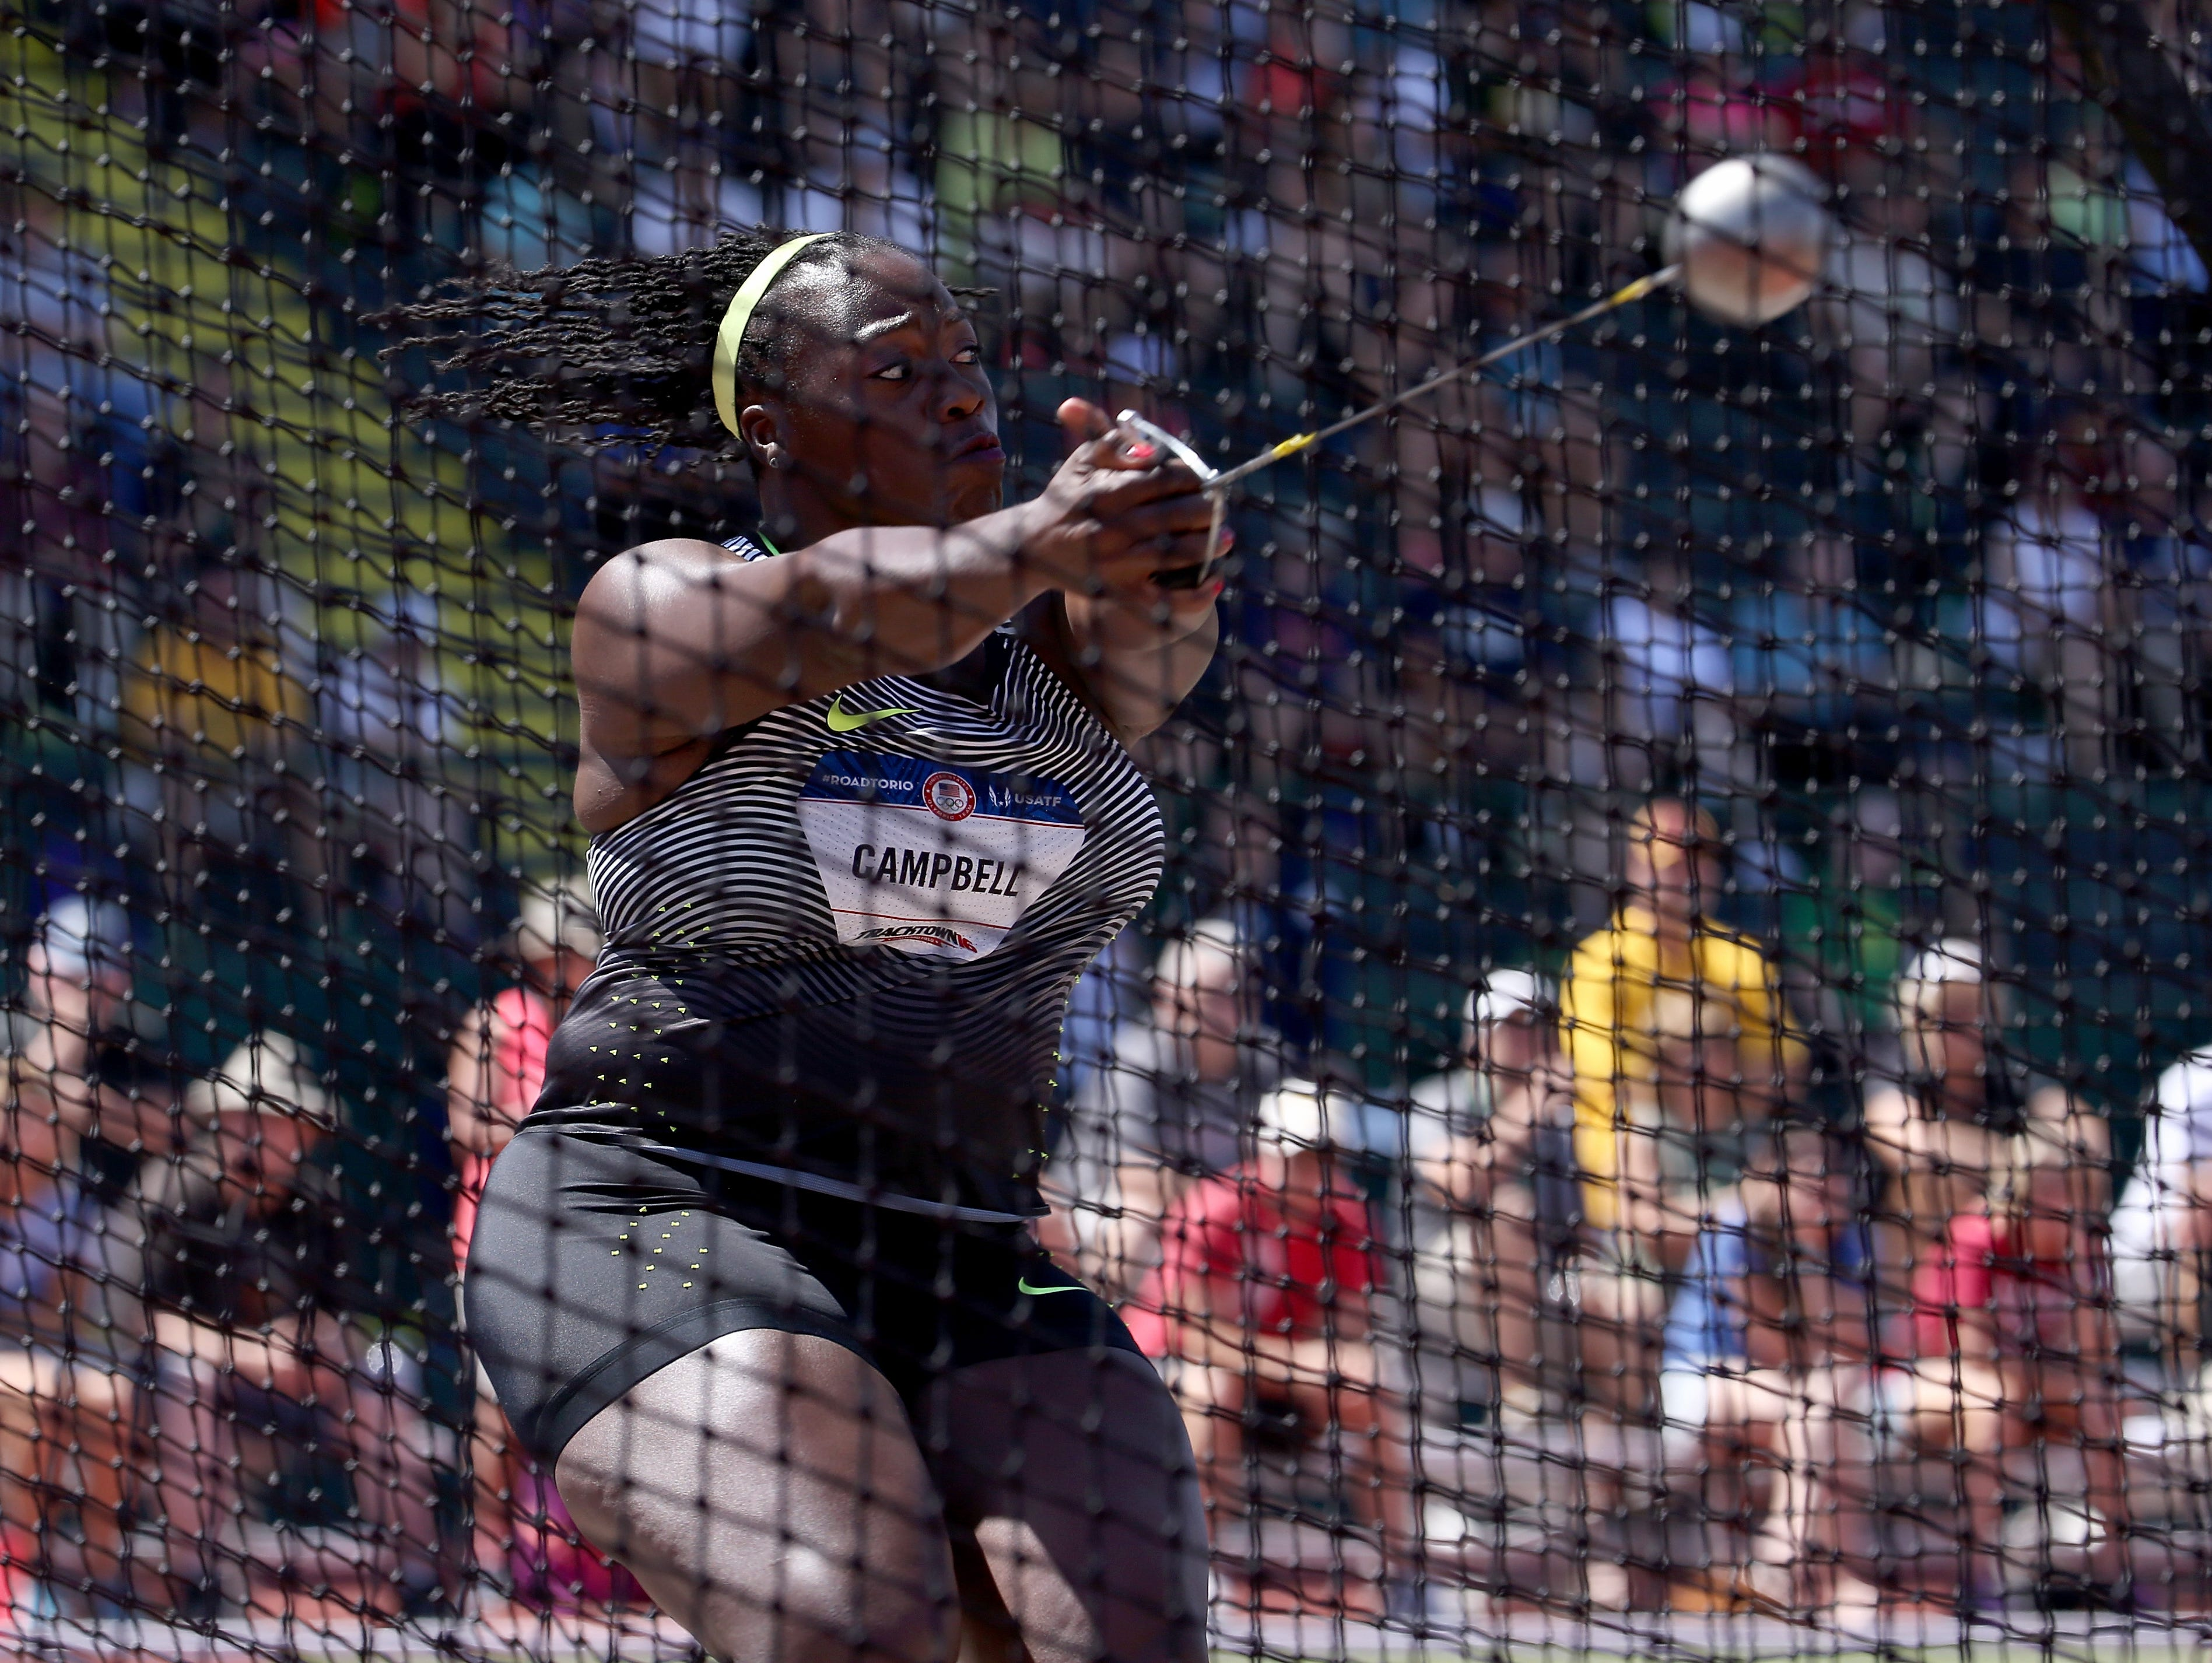 EUGENE, OR - JULY 06: Amber Campbell, first place, reacts in the Women's Hammer Throw Final during the 2016 U.S. Olympic Track & Field Team Trials at Hayward Field on July 6, 2016 in Eugene, Oregon.